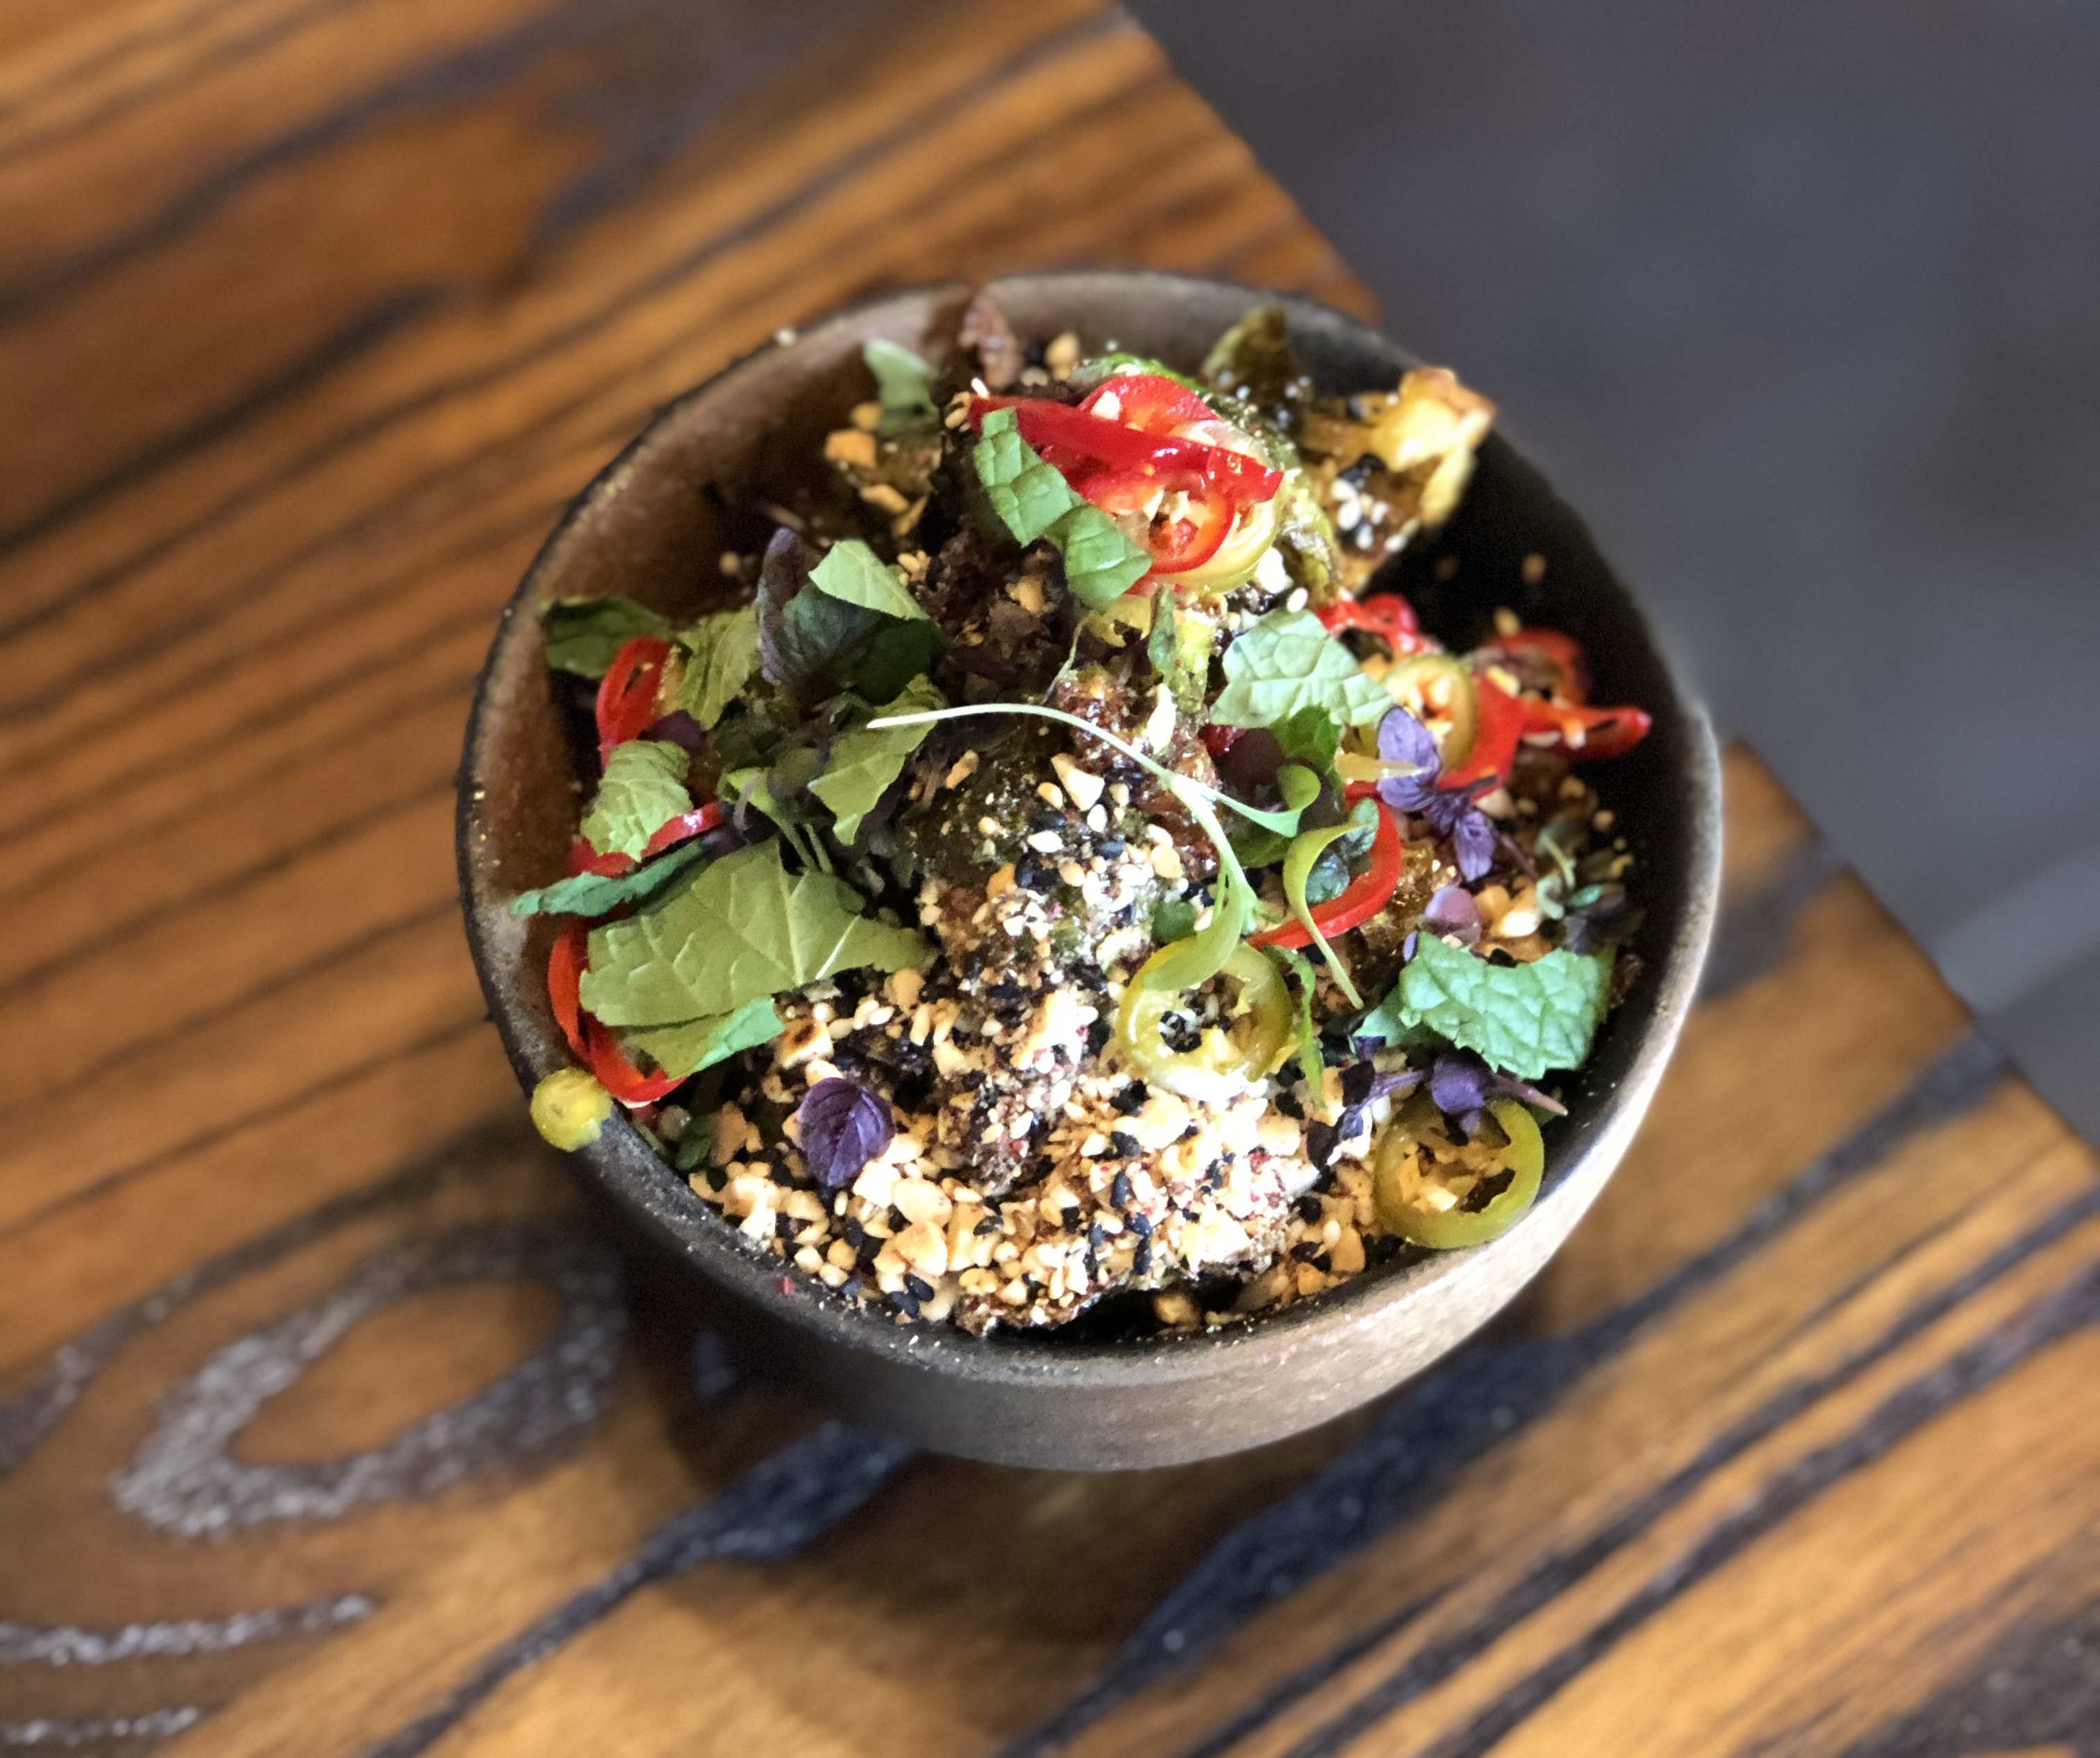 An earthenware bowl filled with fried/charred brussels sprouts garnished with sliced, red chilis, chopped herbs, black sesame seeds, and crushed peanuts